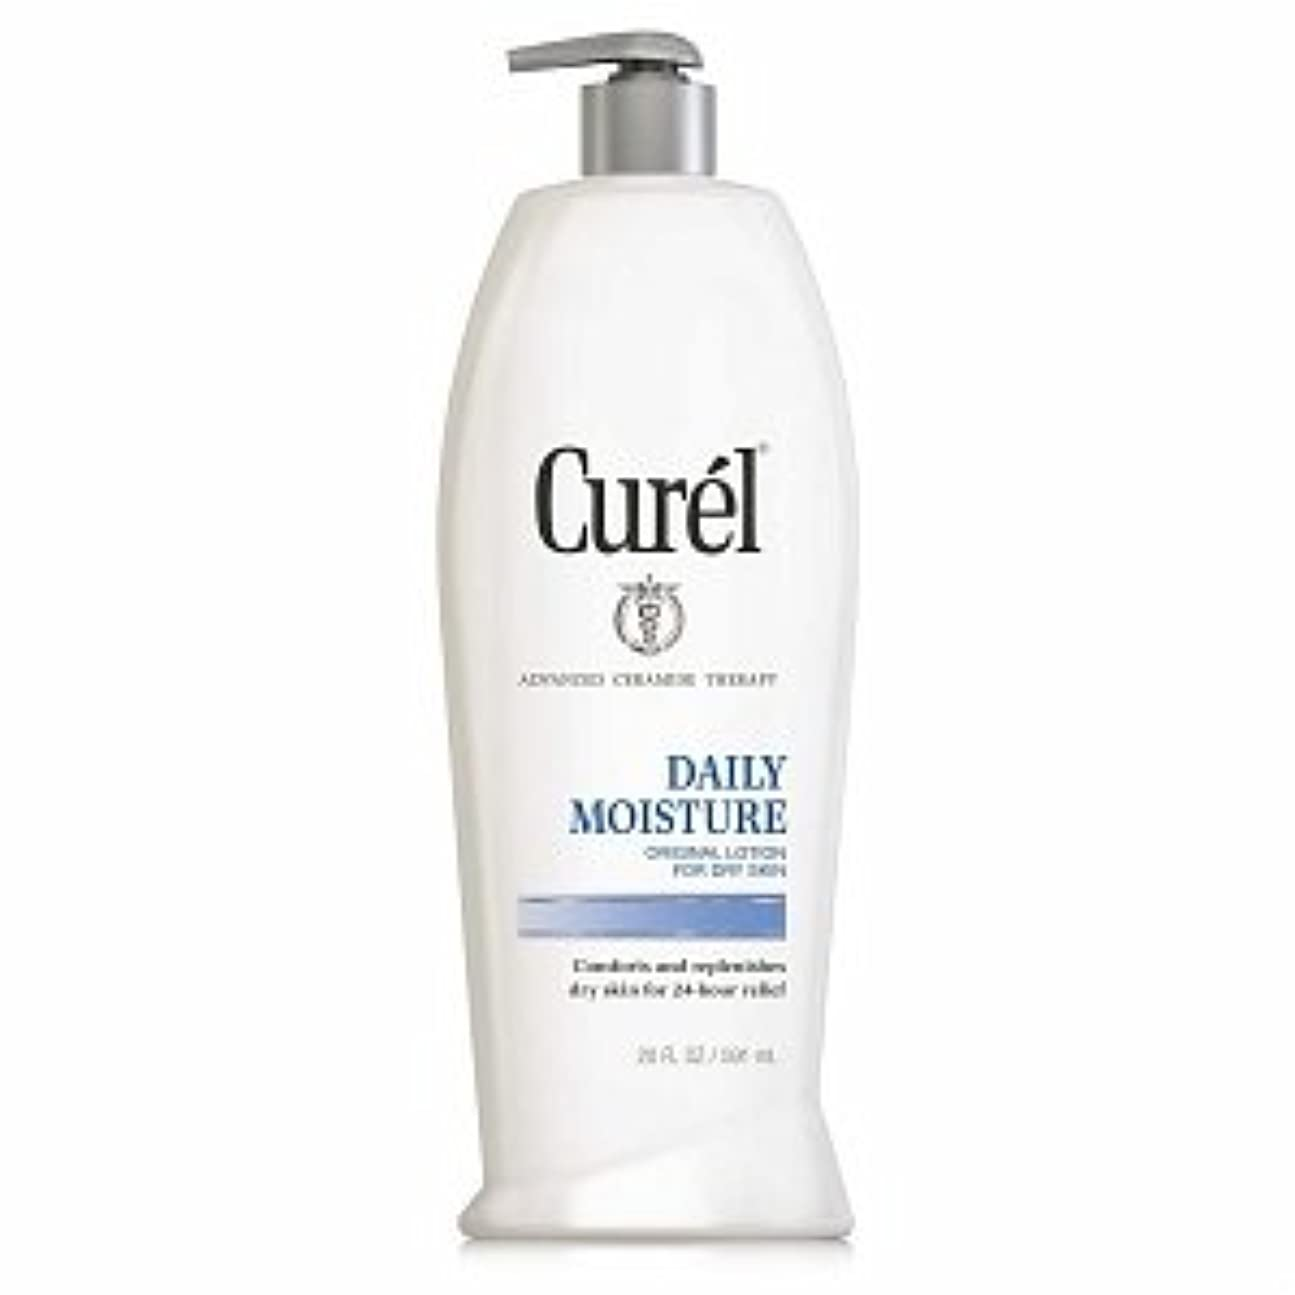 Curel Daily Moisture Original Lotion for Dry Skin - 13 fl oz  ポンプ式